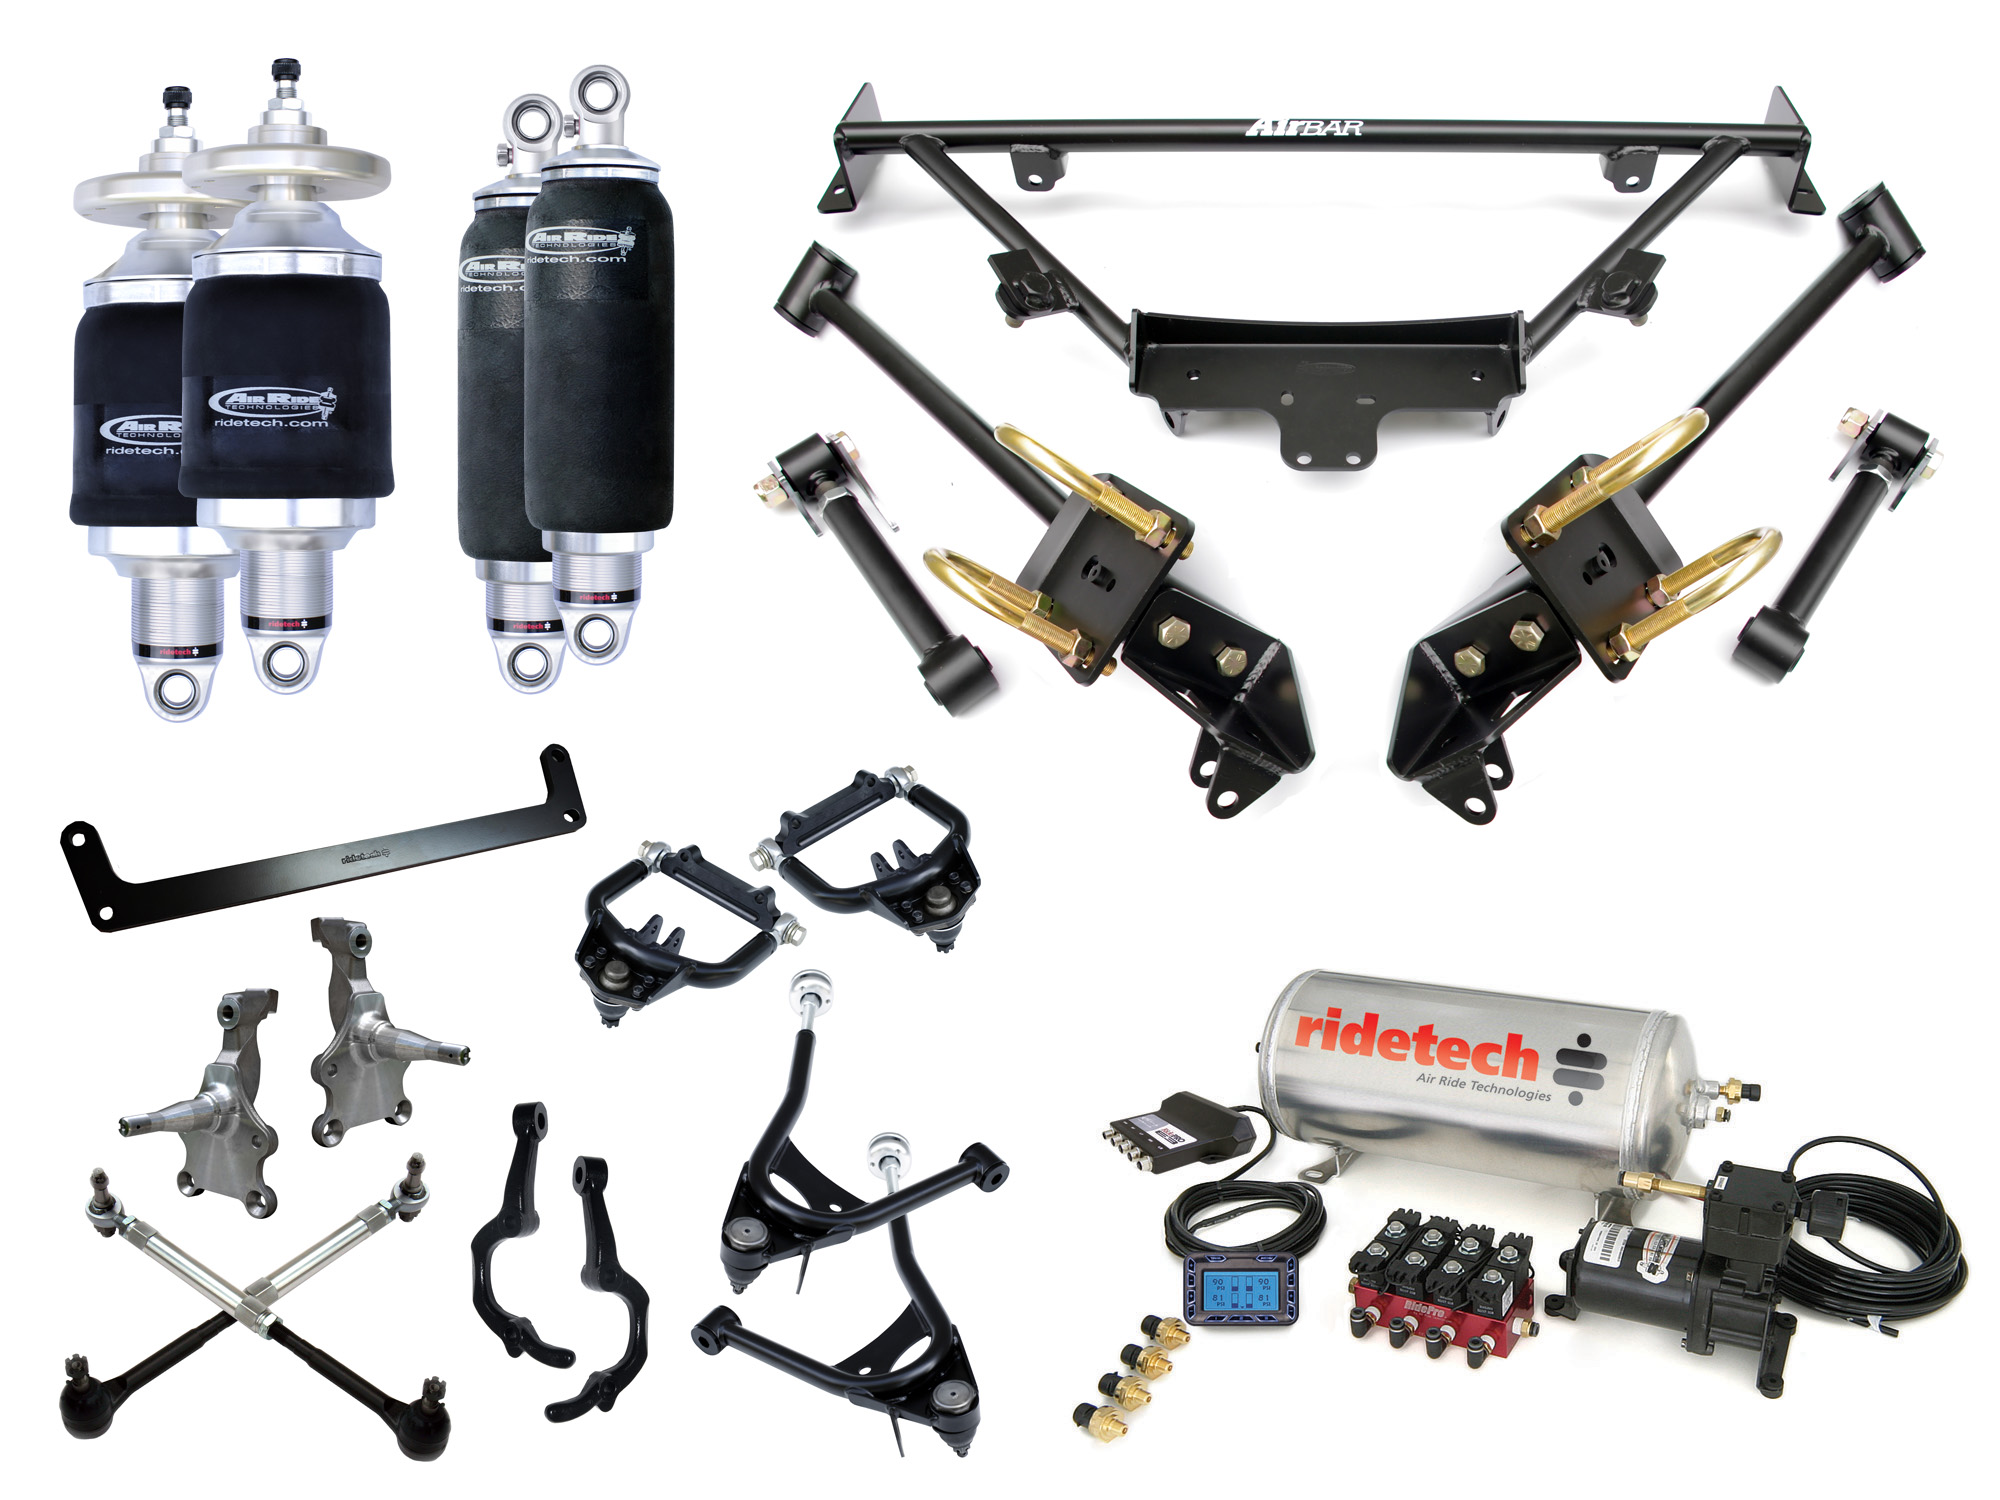 ART12090298 Ridetech 64'- 66' Ford Mustang Complete Air System (incl: Strong Arms, TruTurn System, Muscle Bar, 4 Link, HQ Shockwaves)